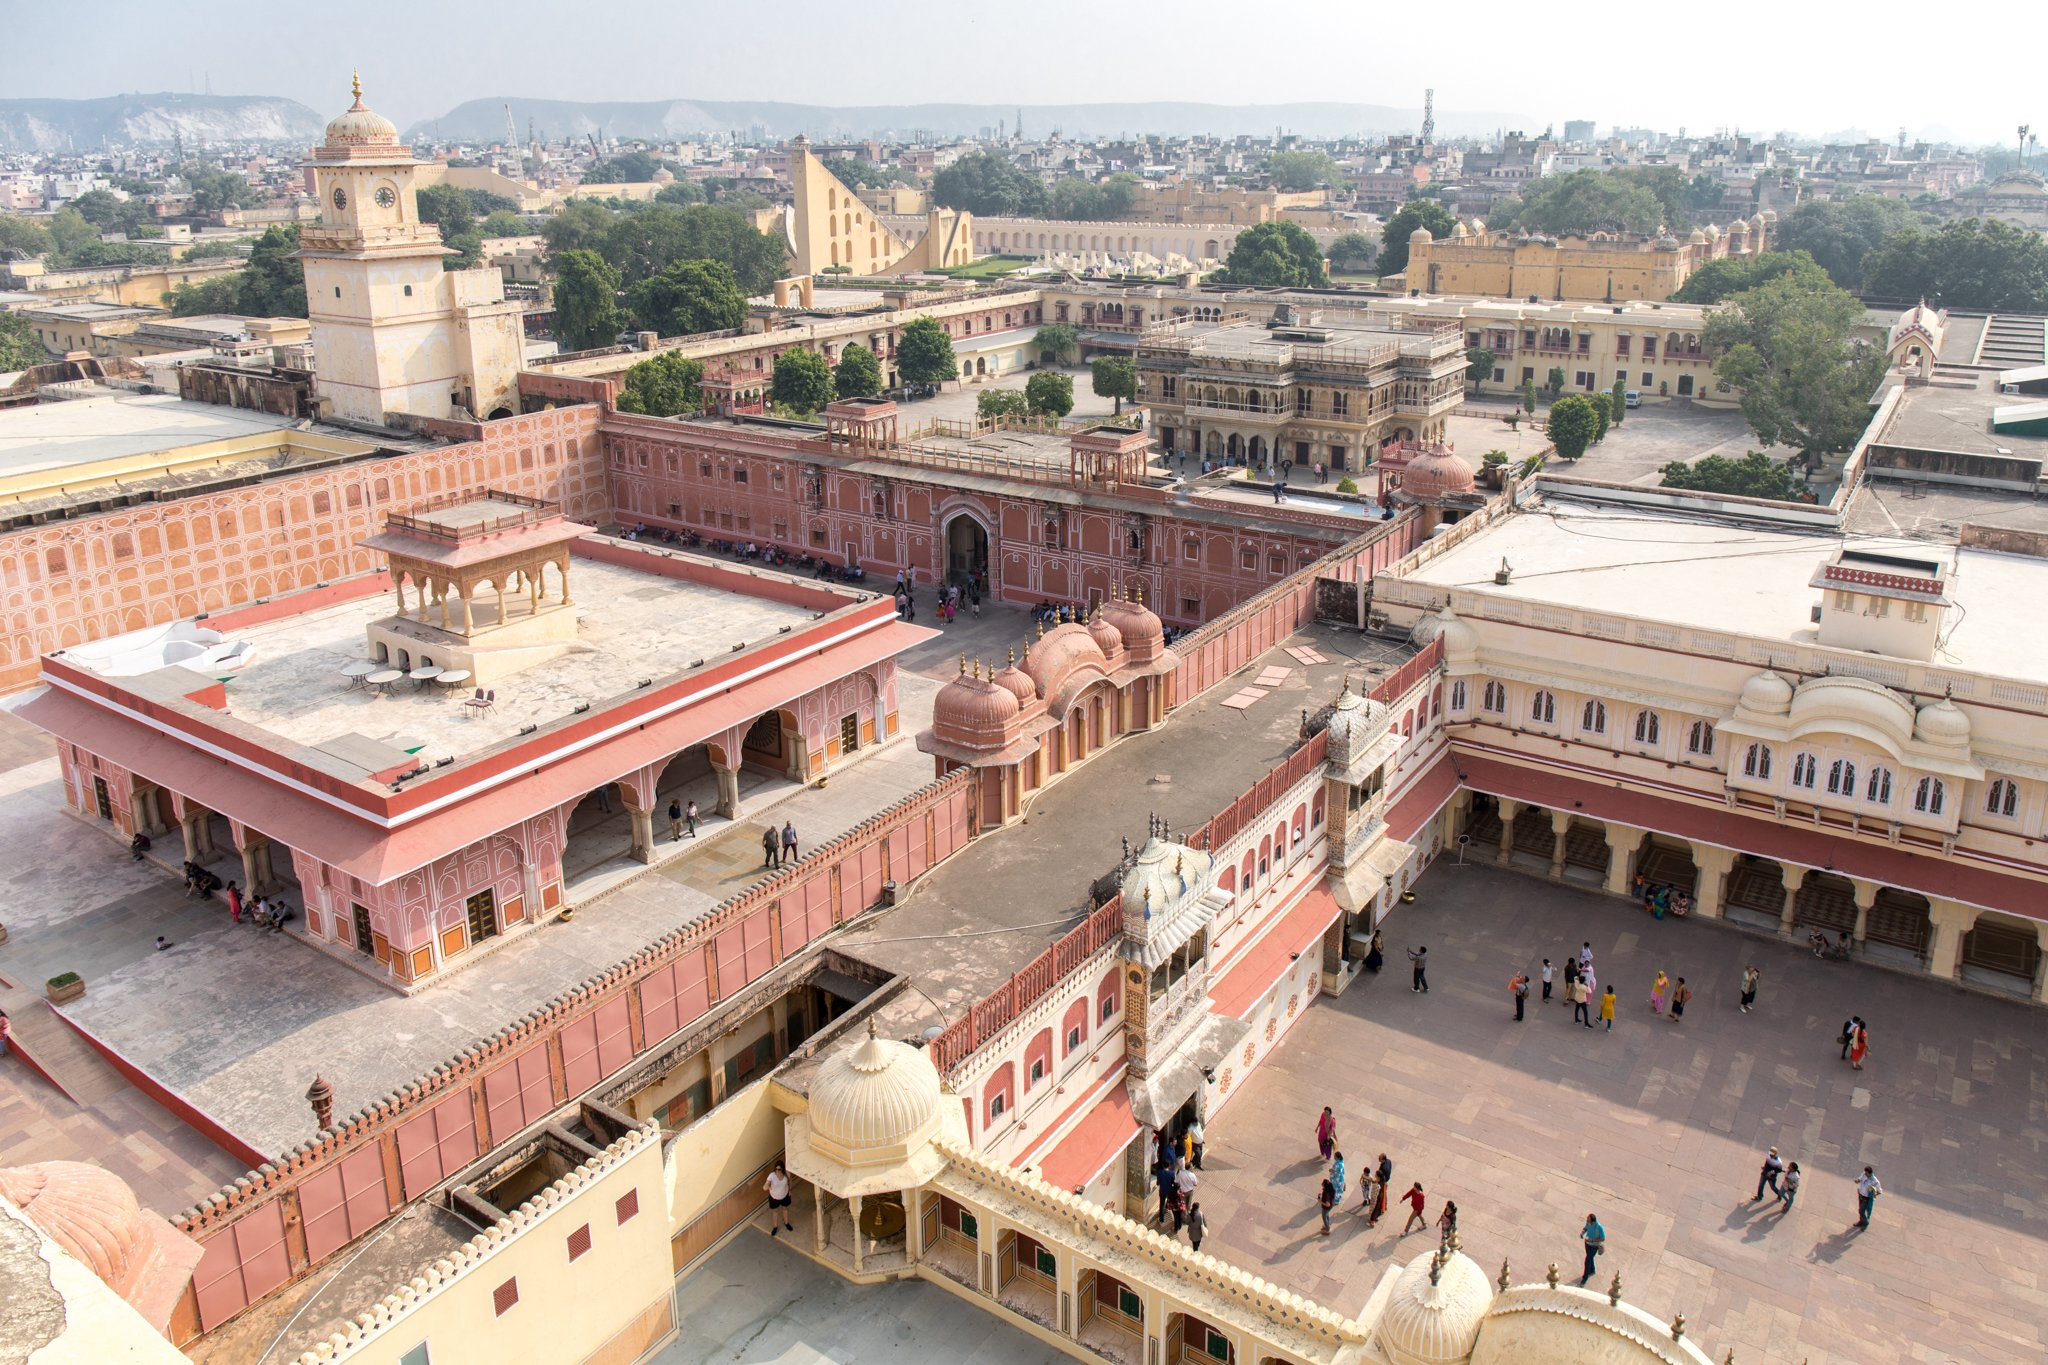 Bird's eye view of the Diwan-i-Khas (left) and the inner courtyard (right)